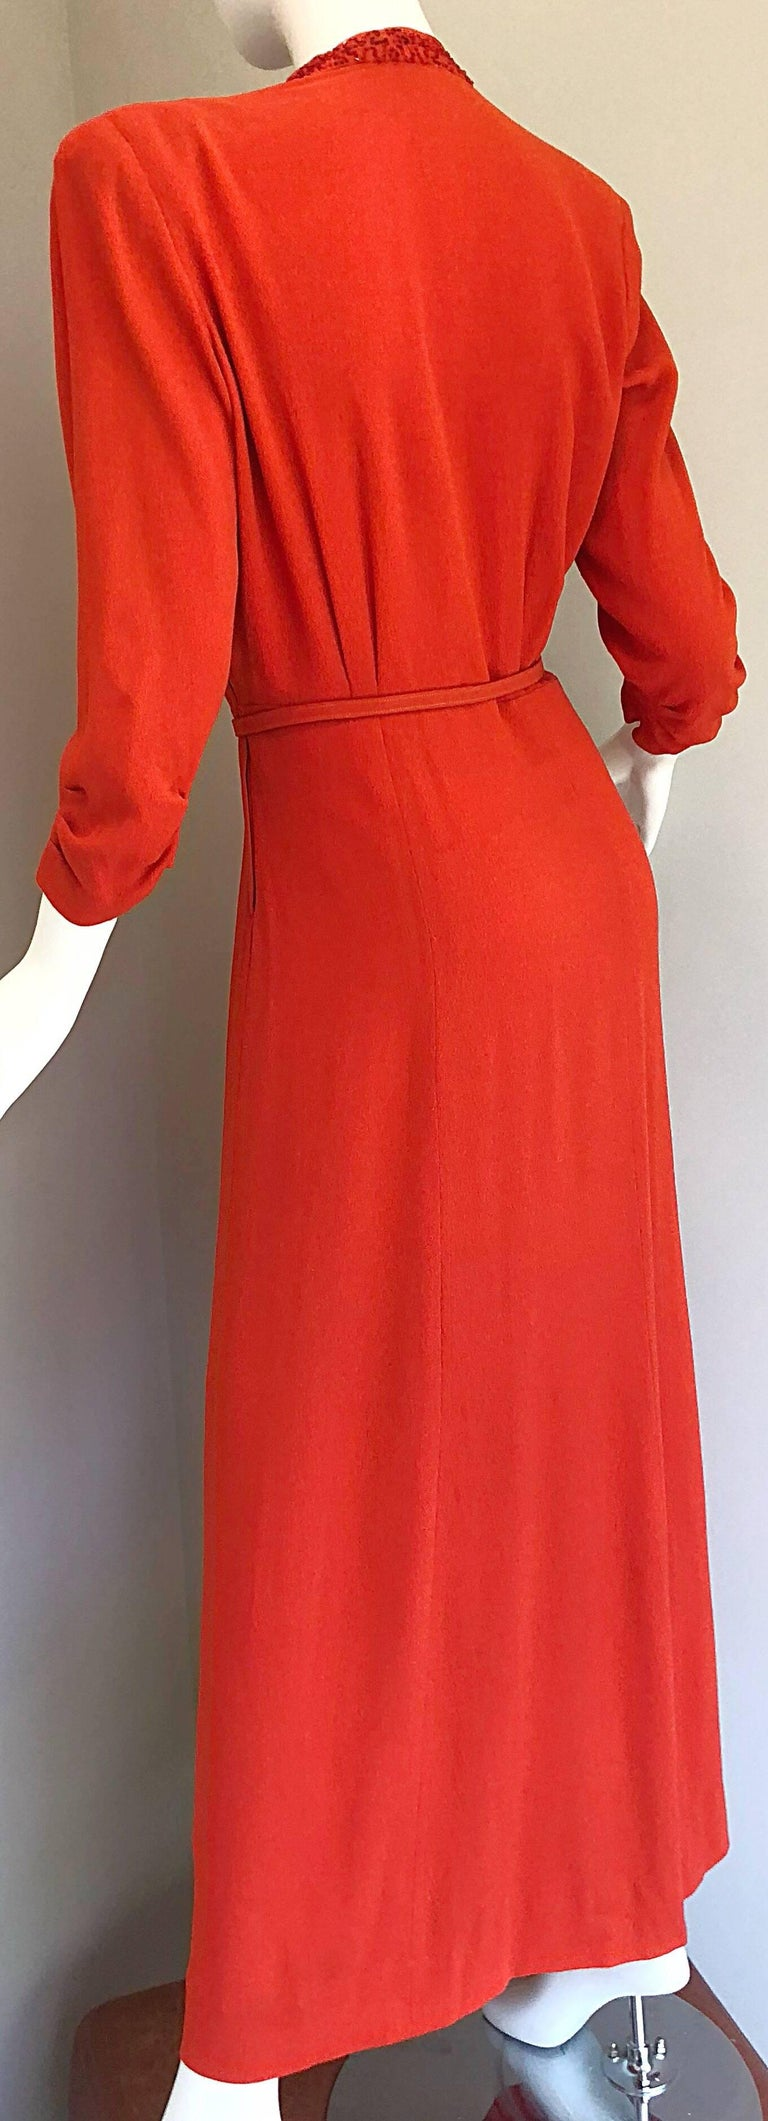 95d430bbeee7 1940s Kornhauser Original Burnt Orange Beaded Vintage 40s Couture Crepe Gown  For Sale 3